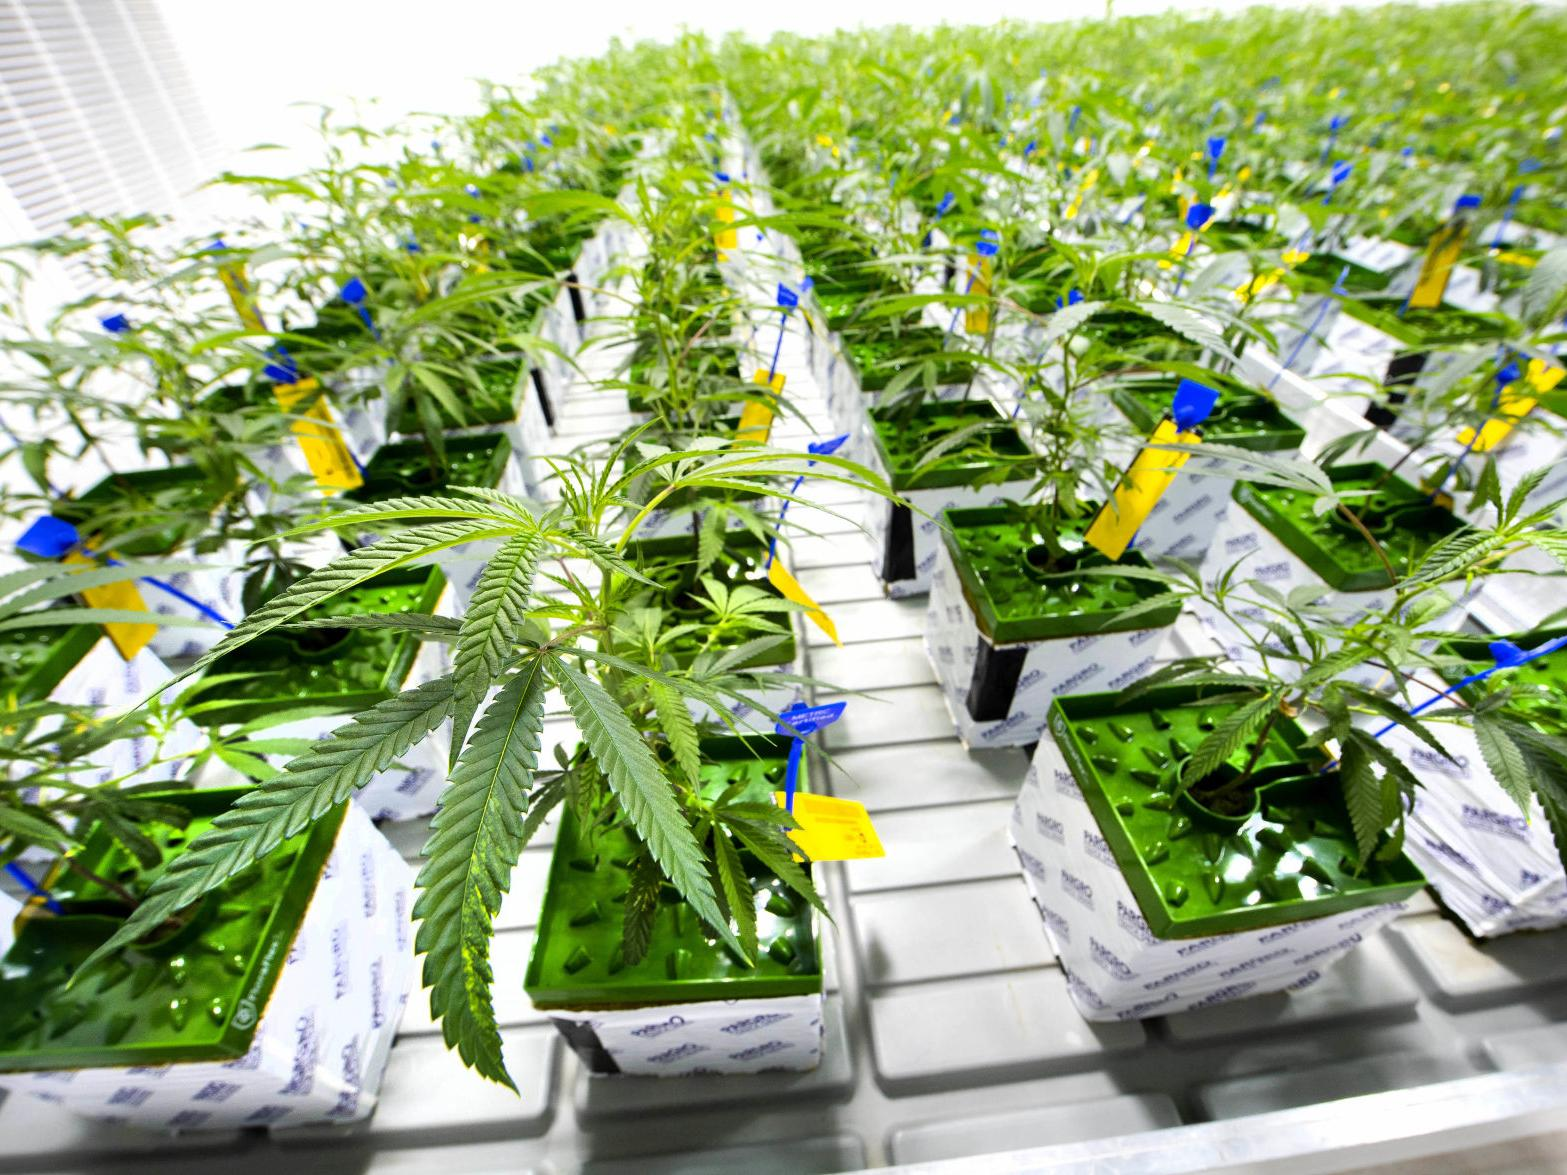 look inside the louisiana medical marijuana site harvesting 570 plants a  month; here's how it works | business | theadvocate.com  the advocate